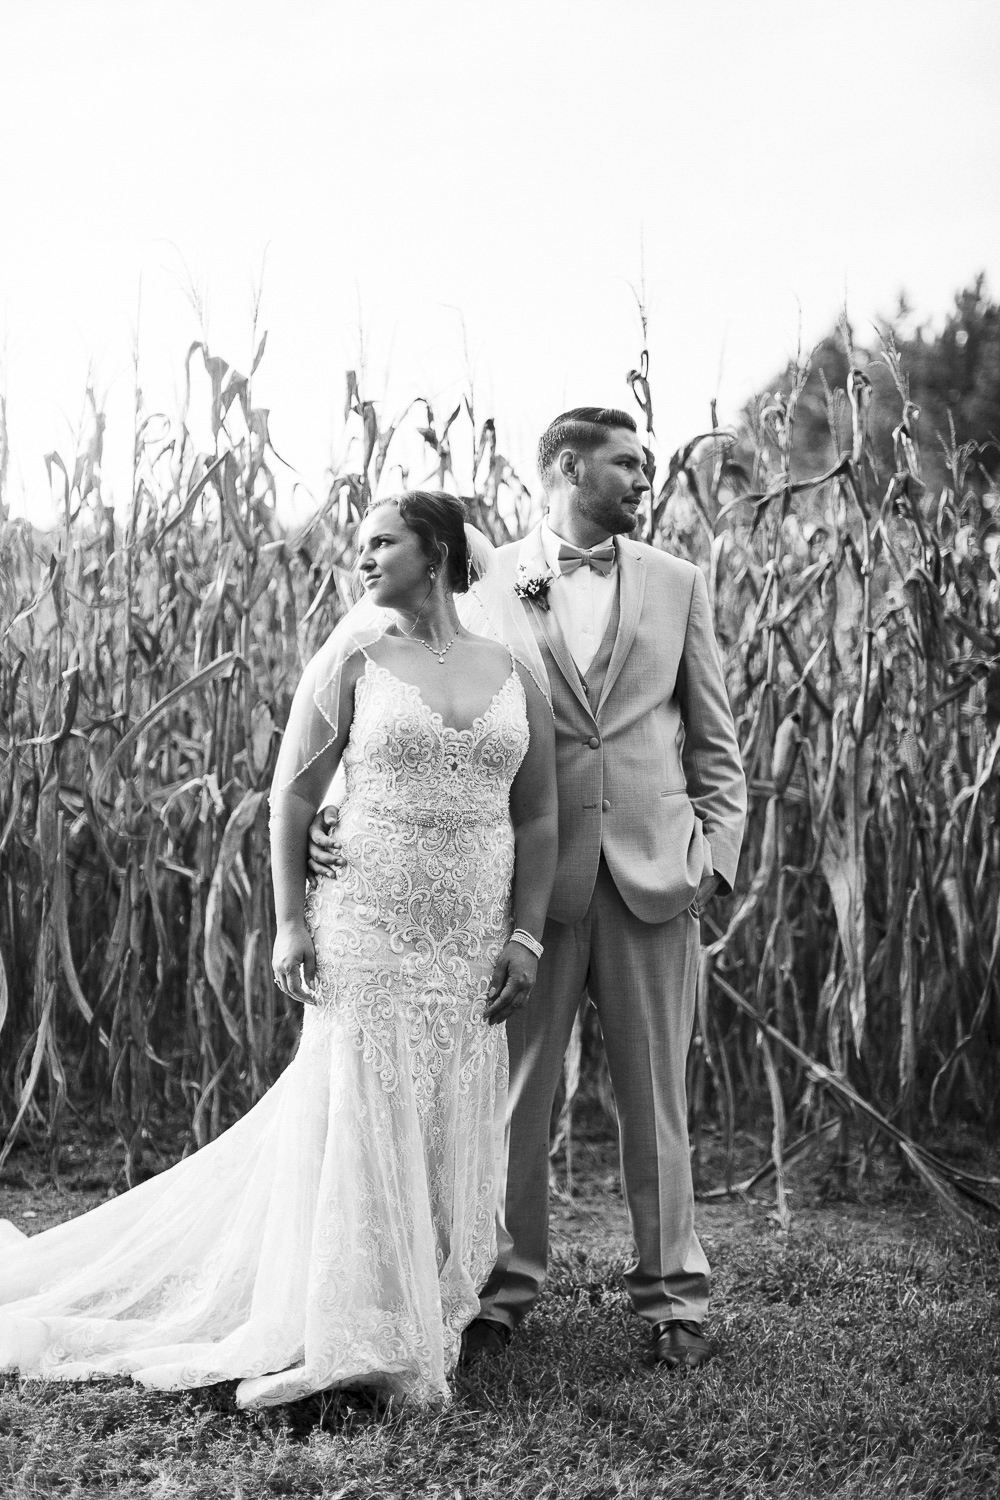 Black and White image of bride and groom on their wedding day